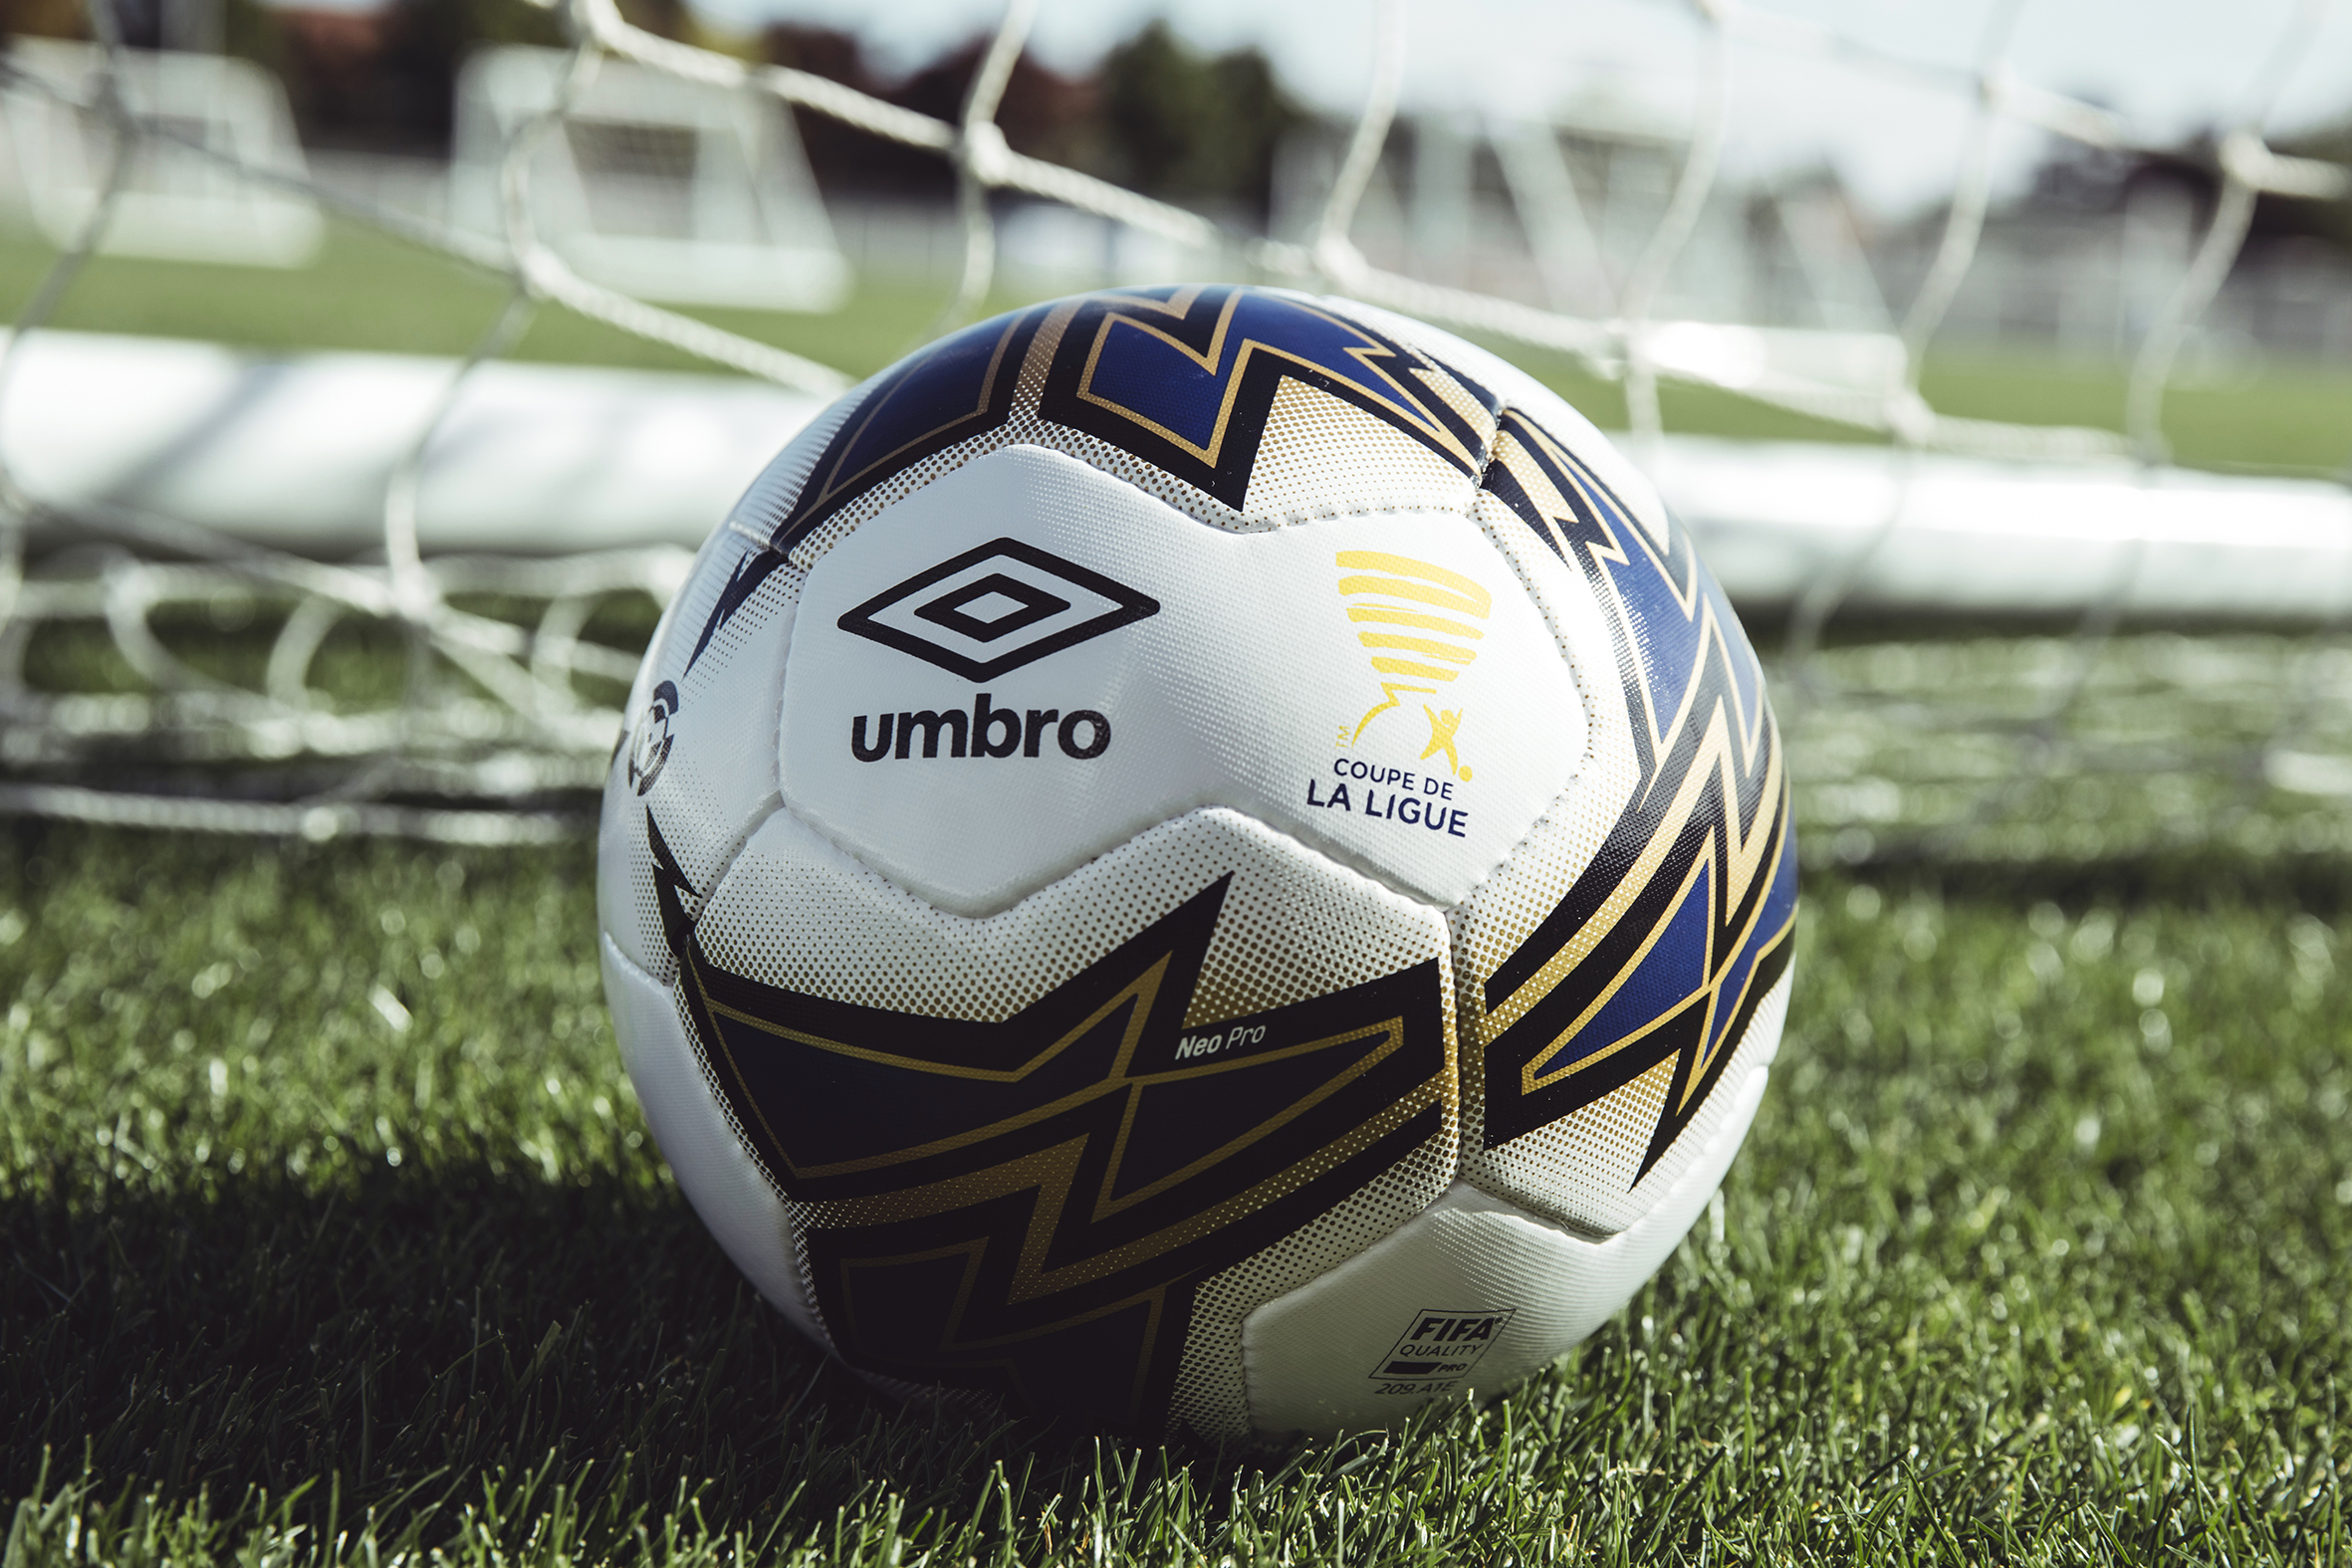 Umbro d voile le ballon officiel de la coupe de la ligue - Billetterie finale coupe de la ligue ...